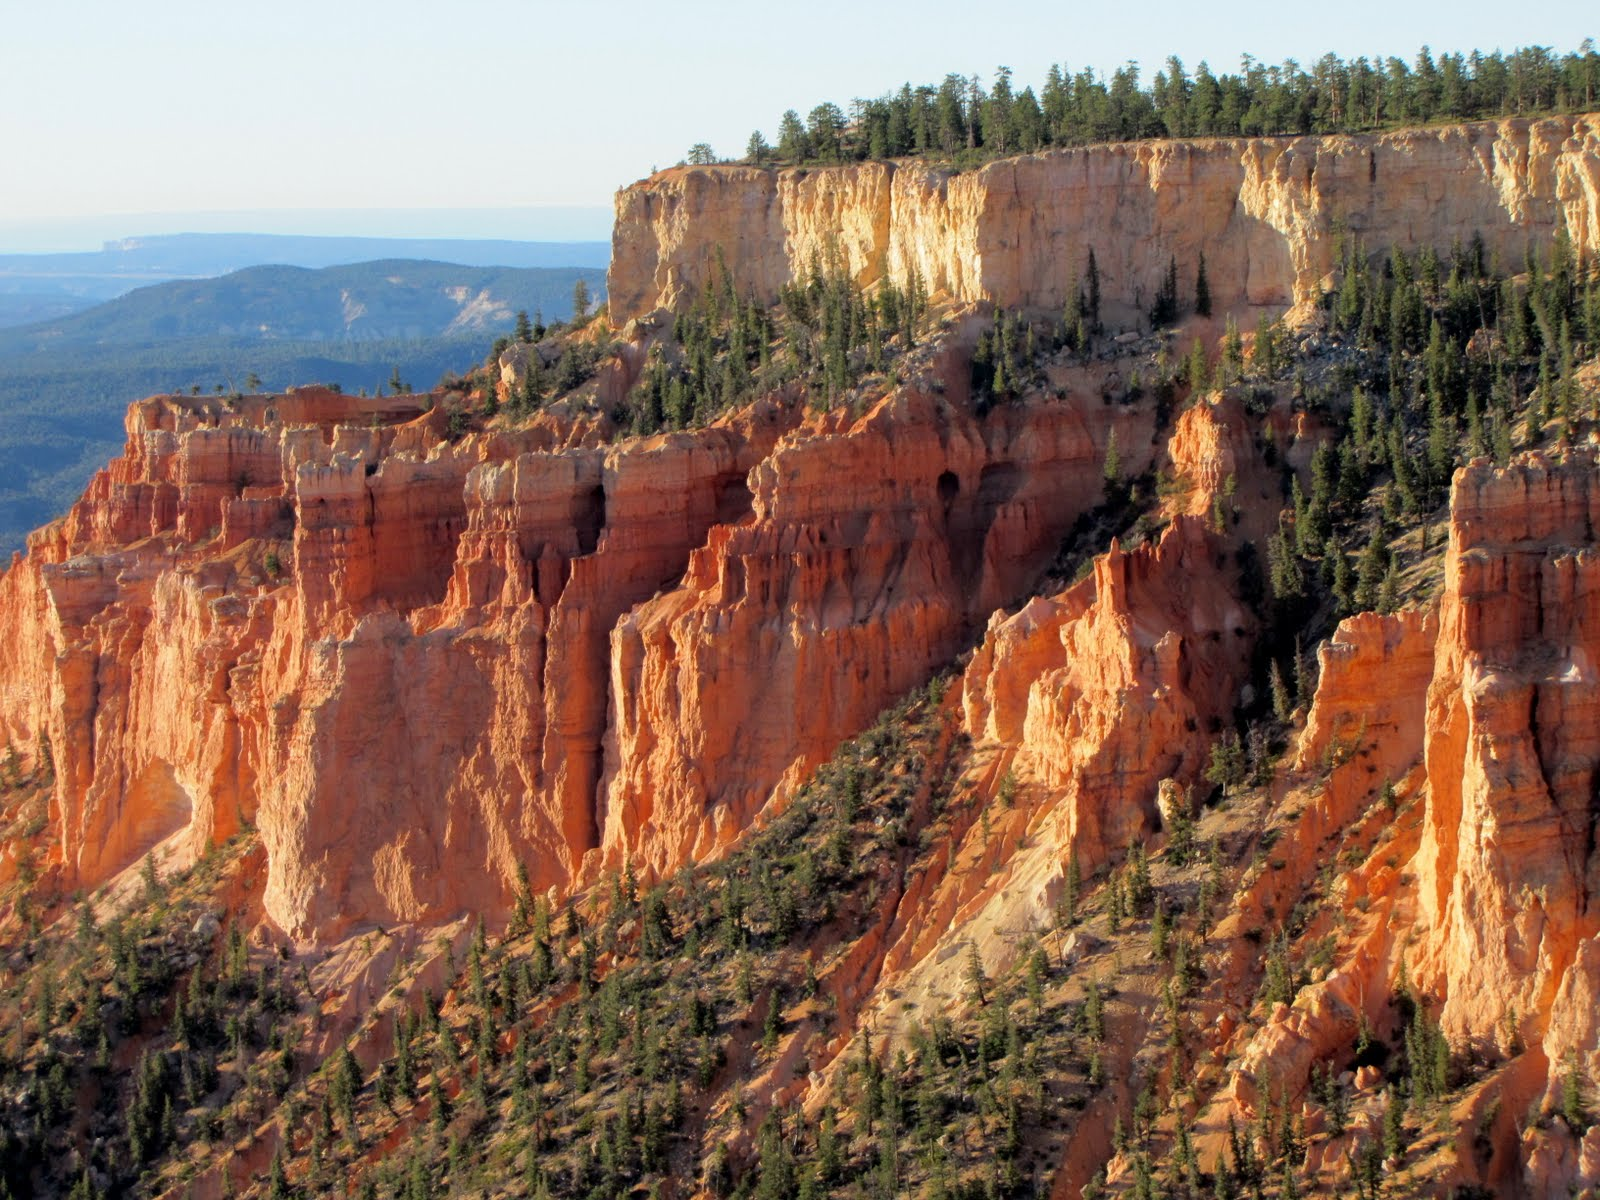 Climbing to the top of Bryce